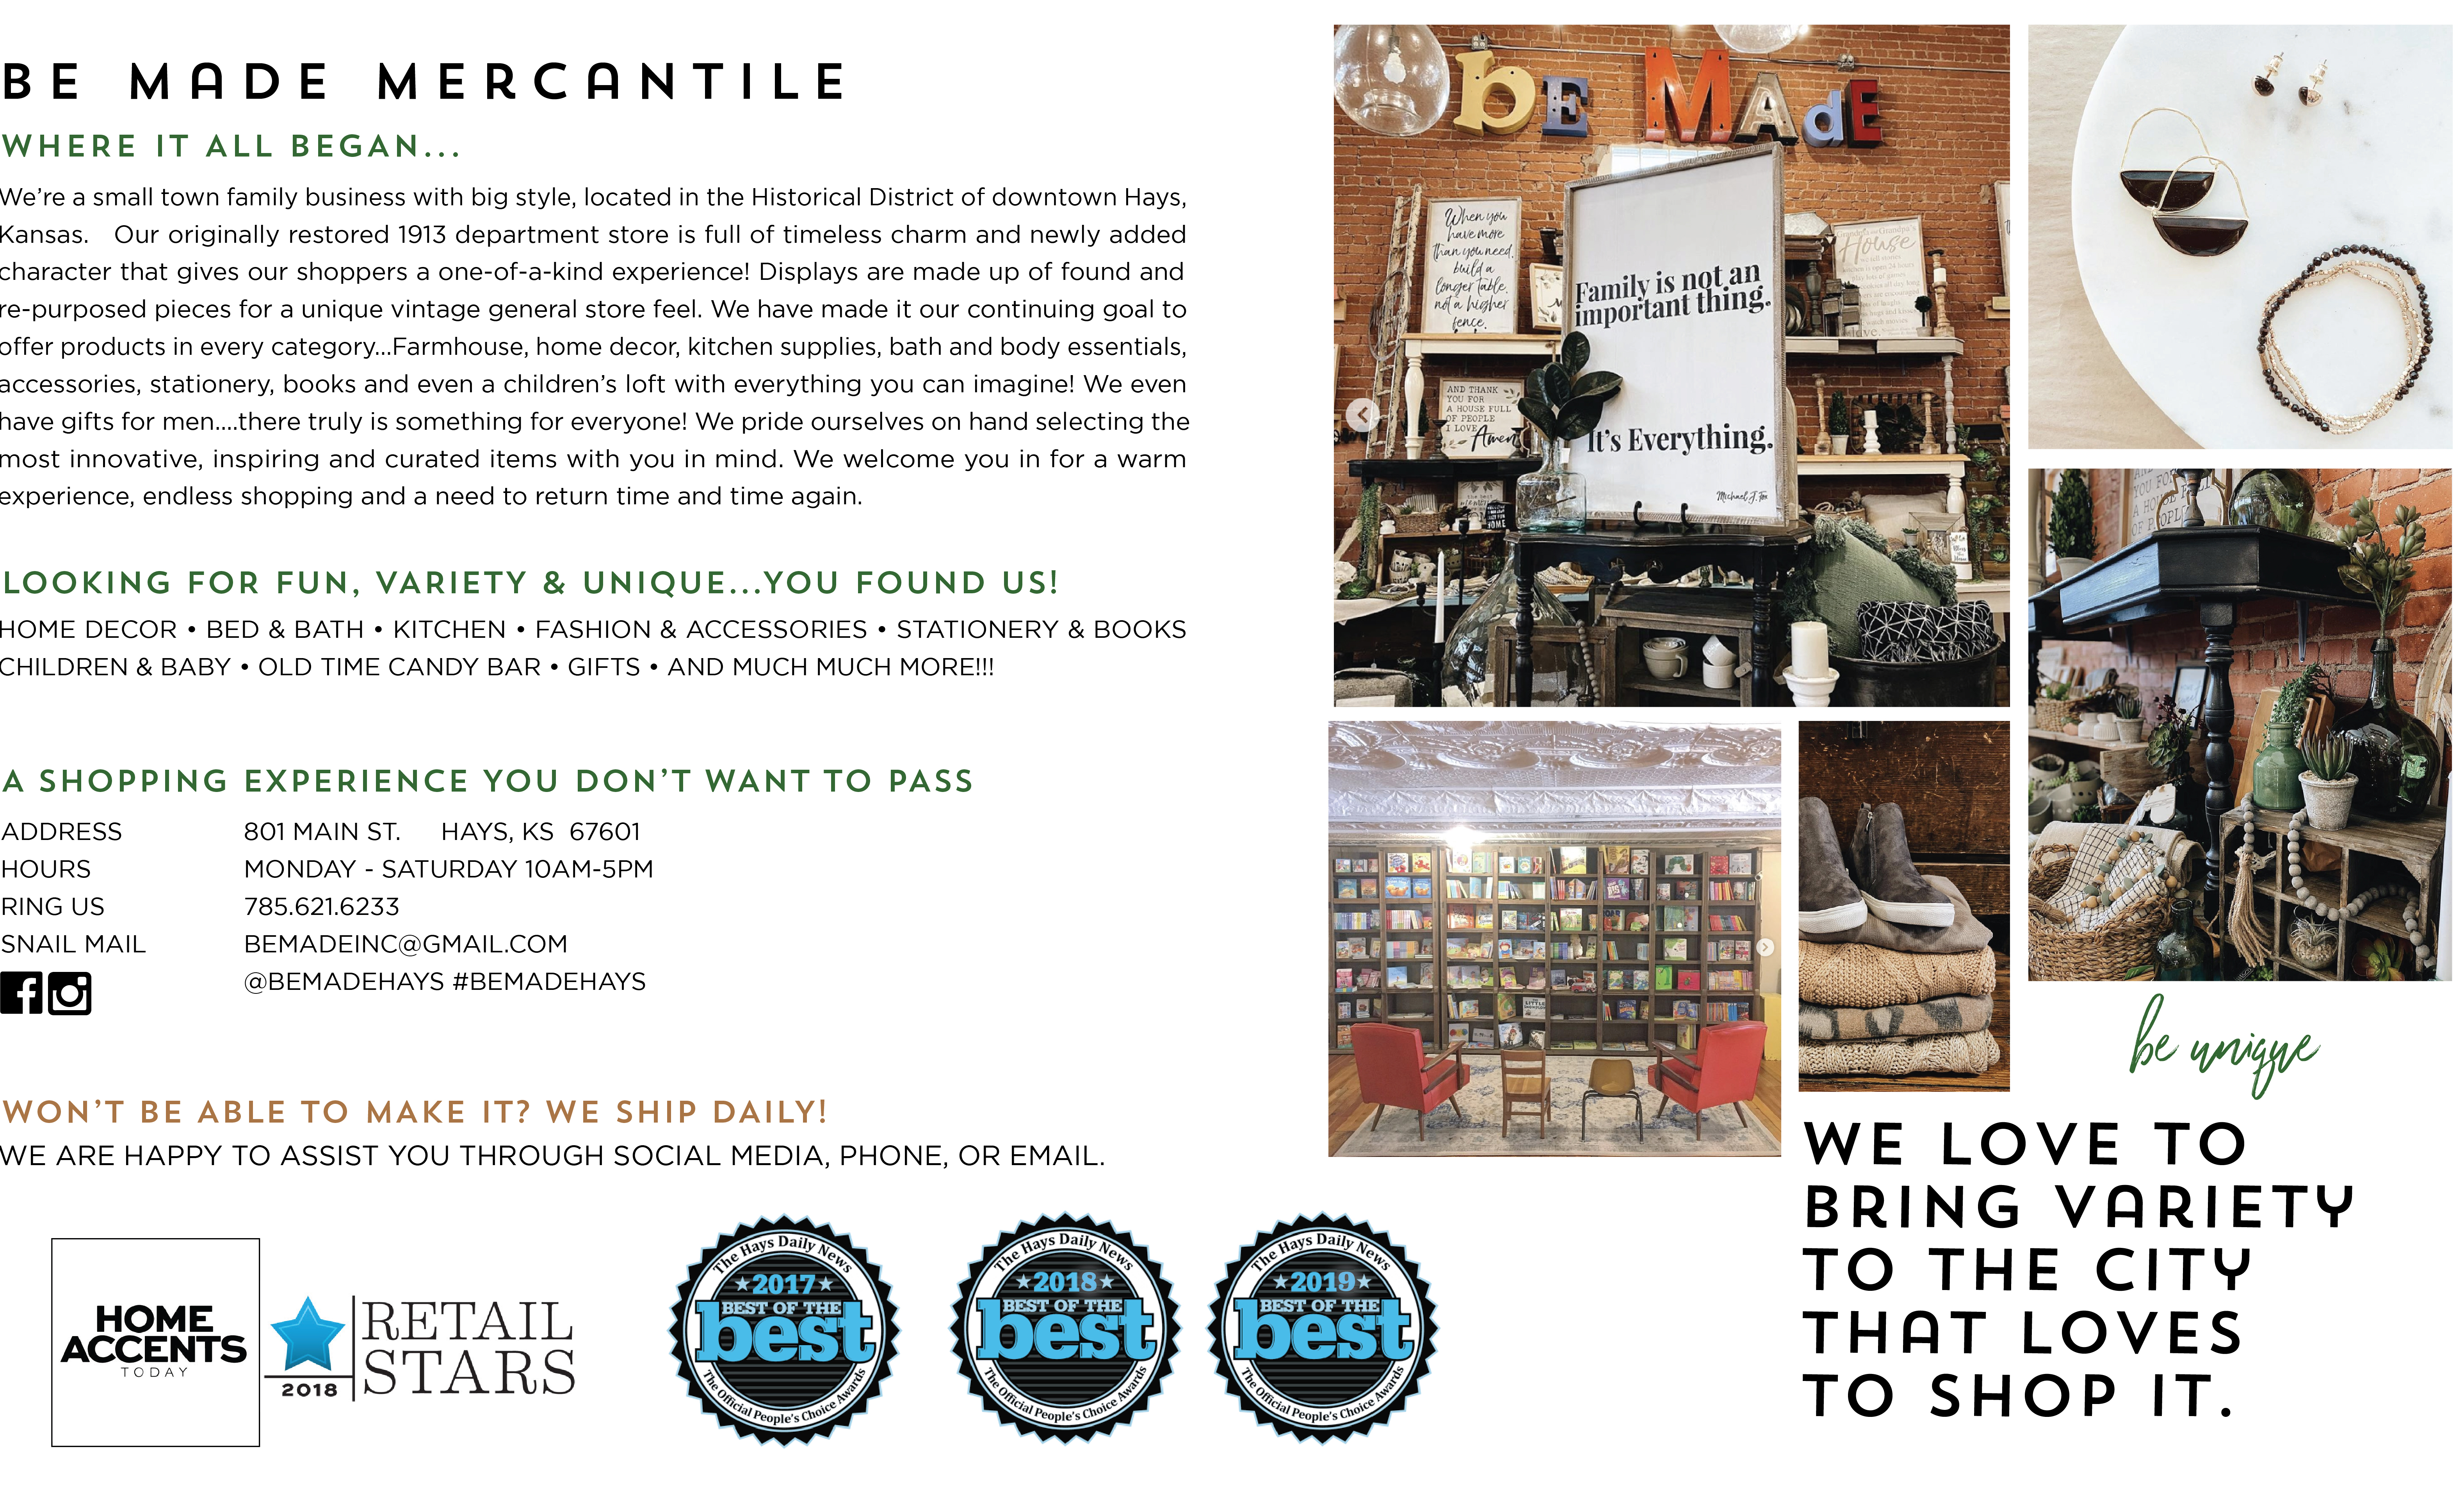 flagship-page-design-01.23.20-welcome-to-be-made-mercantile.jpg